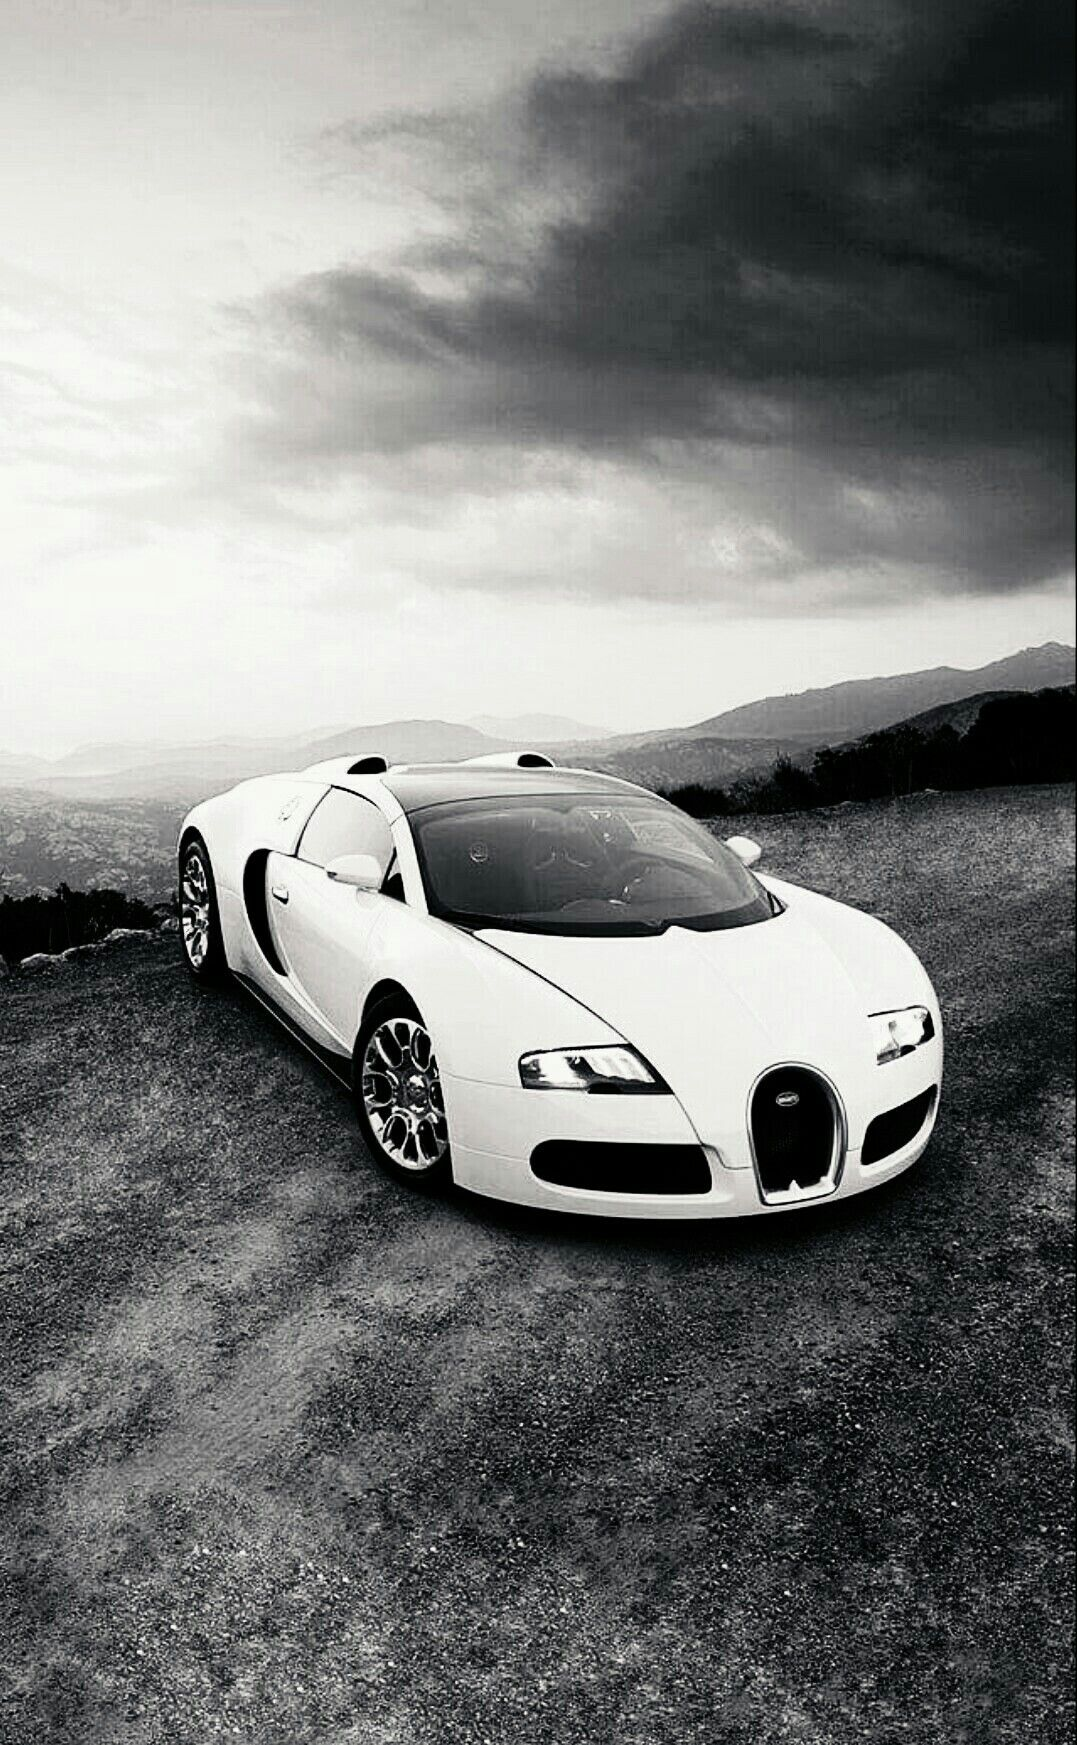 Pin By Wanda Marin On My Love For Black White Car Wallpapers Sports Car Wallpaper Blue Car Accessories